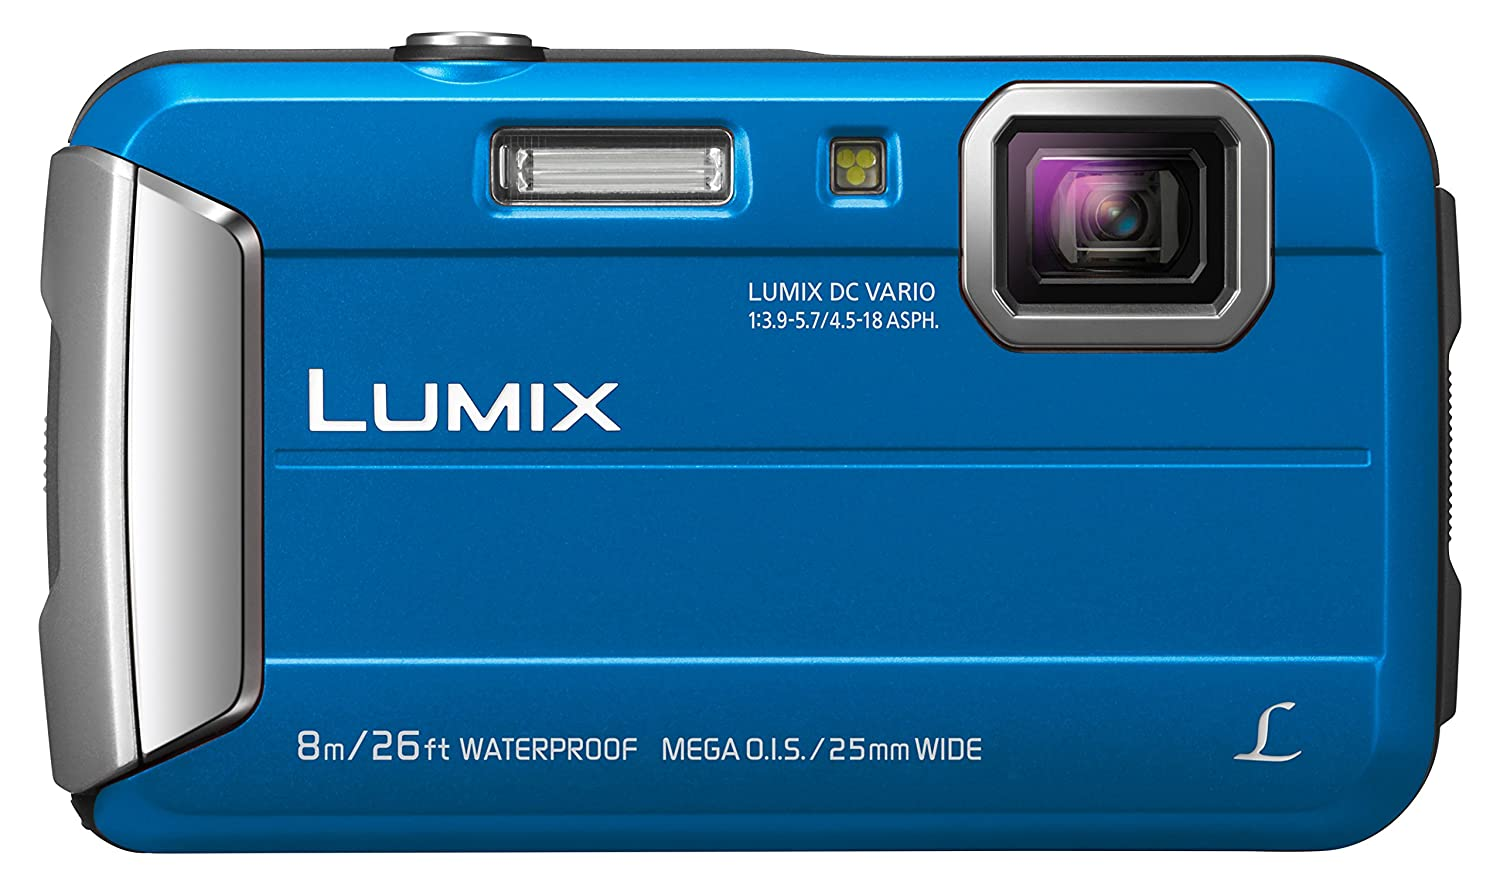 Panasonic LUMIX DMC-FT30 Review